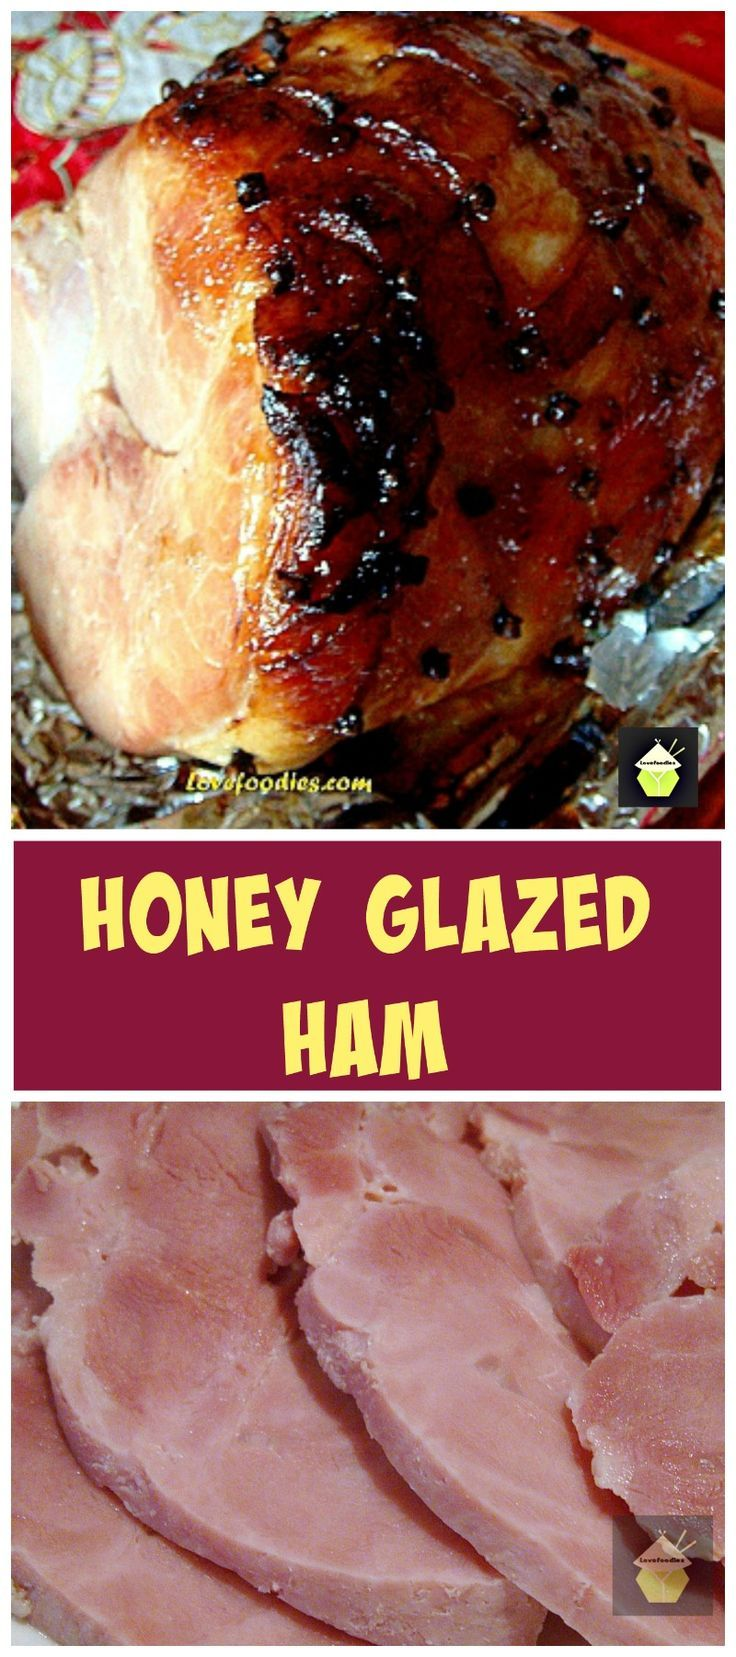 75 best images about Food on Pinterest | Homemade onion ...